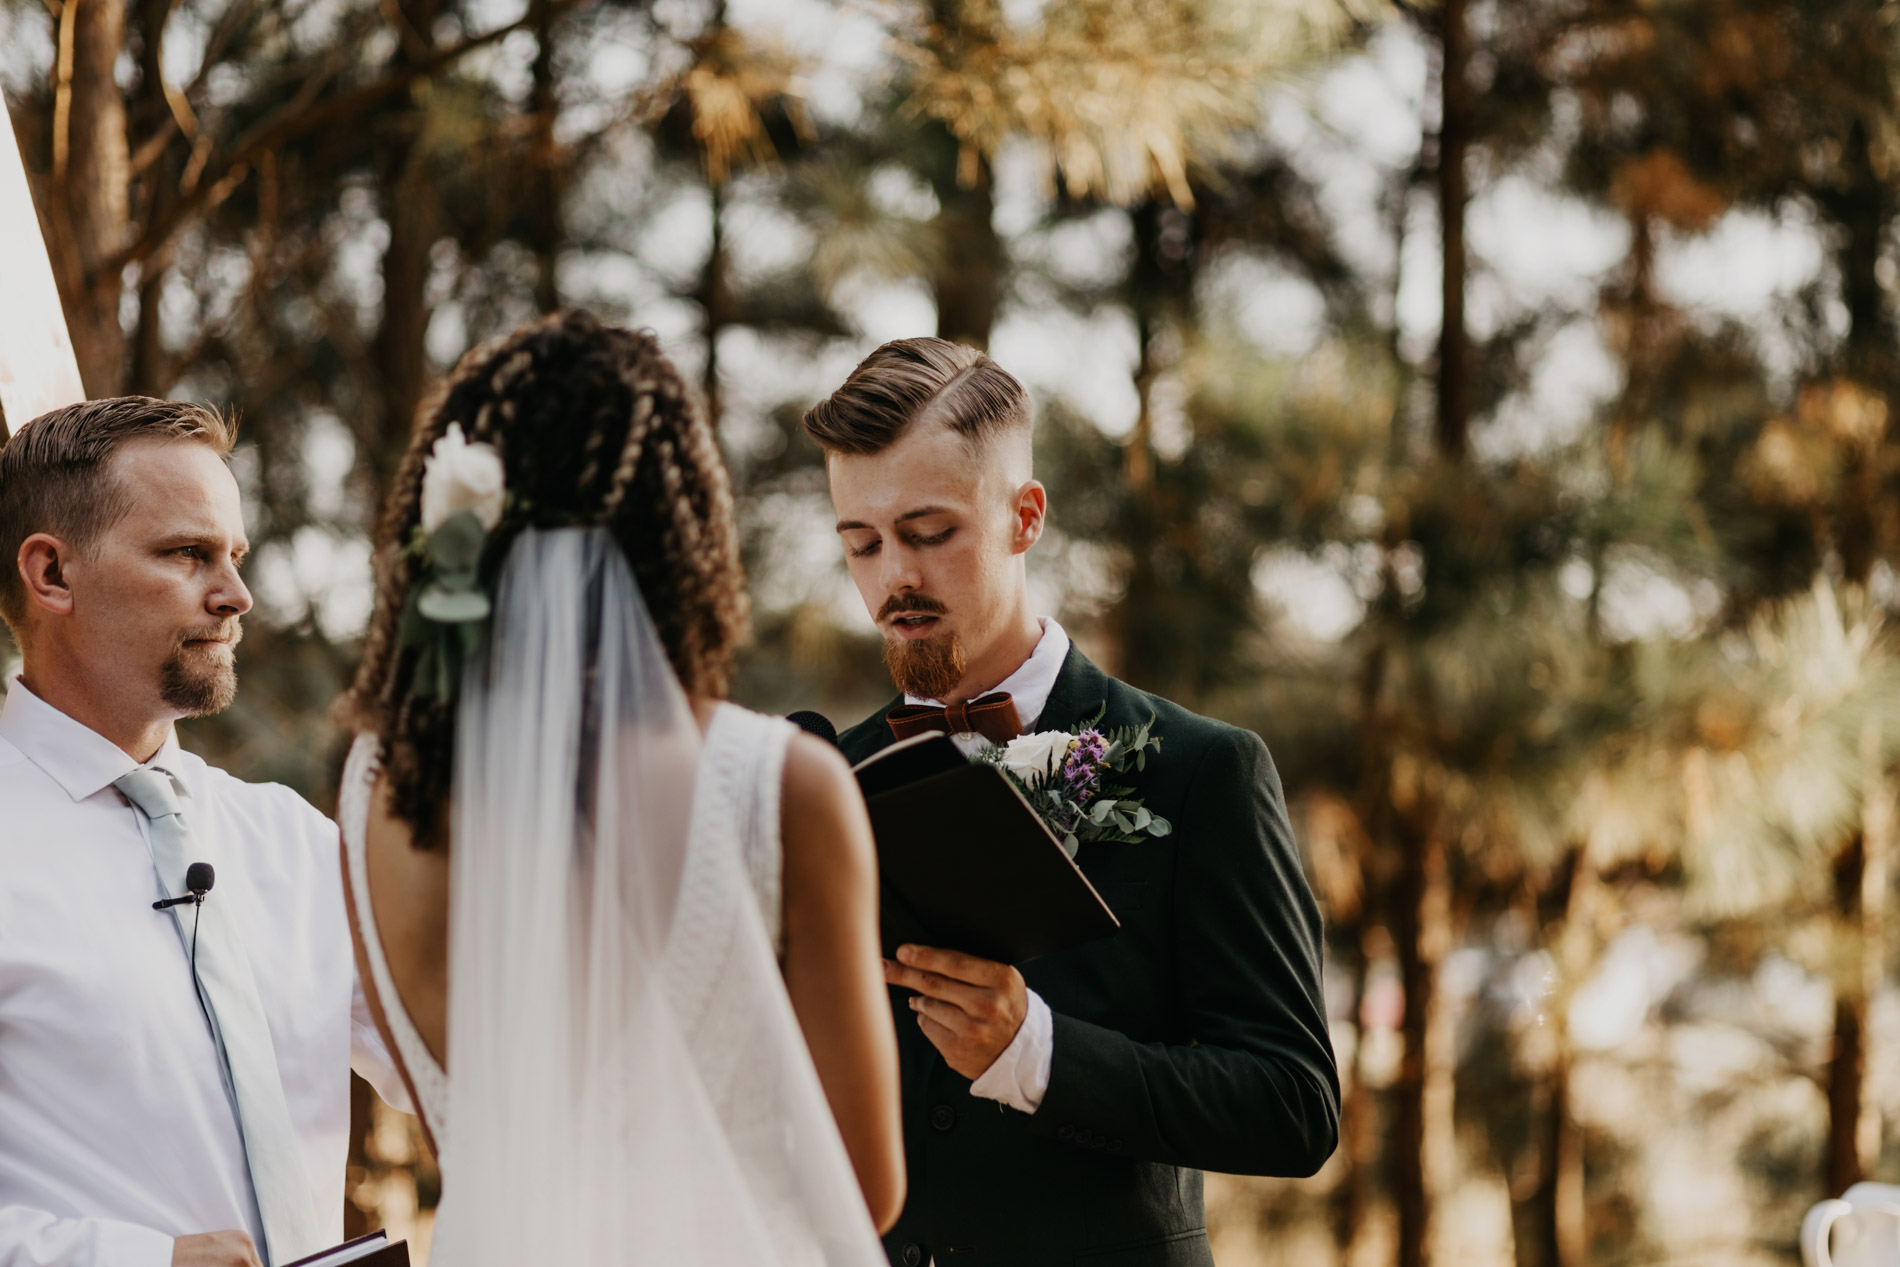 Groom readying hand written wedding vows